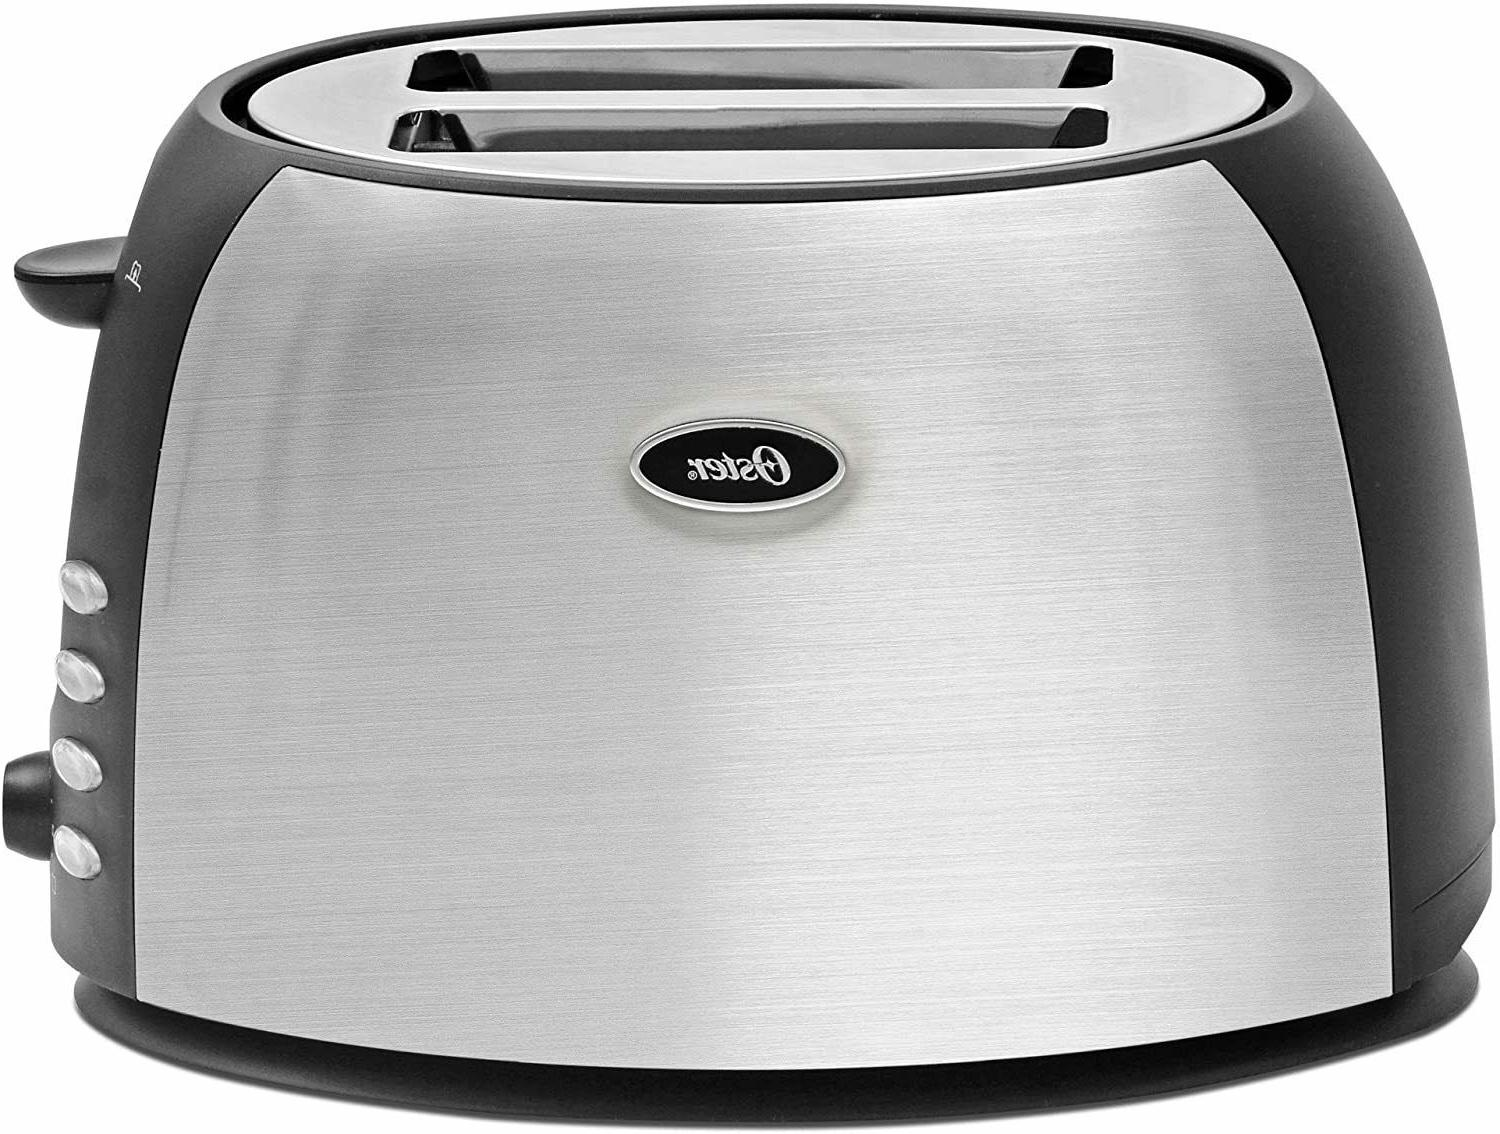 new oster 2 slice toaster brushed stainless